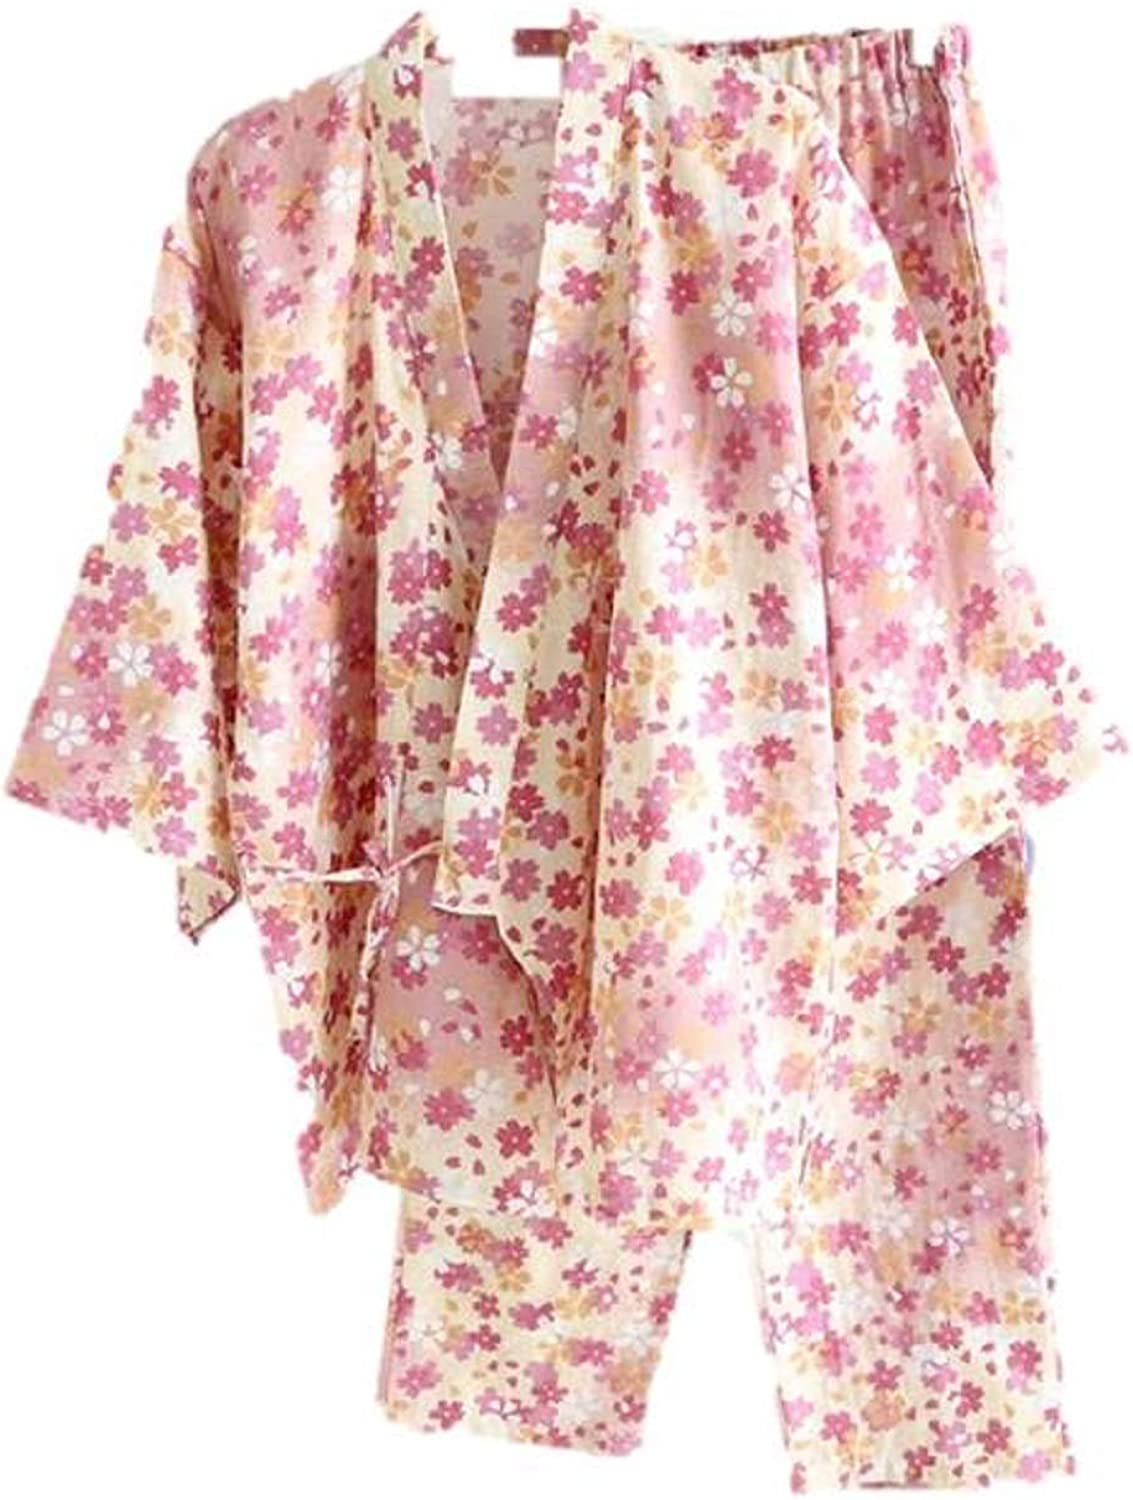 Ramatic Women Floral Prints Cotton Kimono Pajamas Set Japanese Style Nightwear